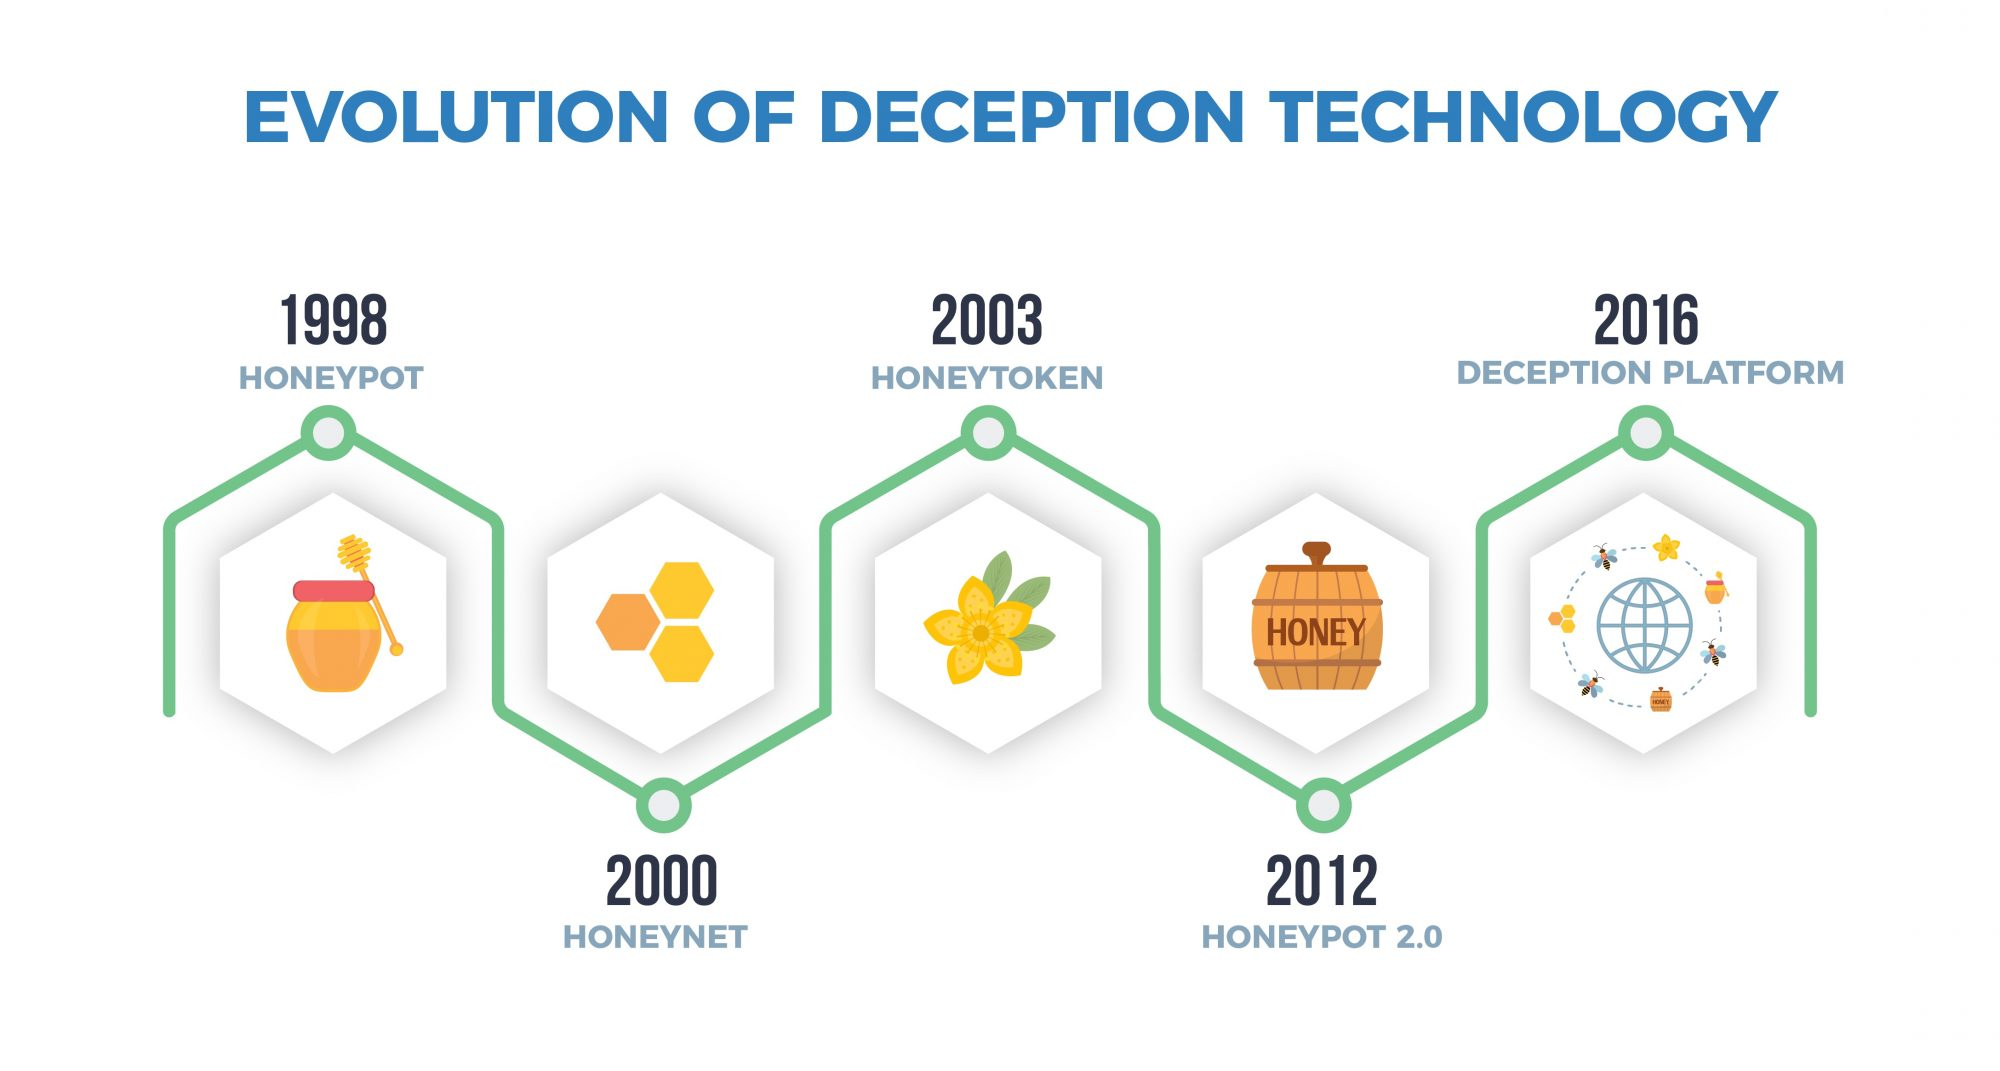 The evolution of deception technology